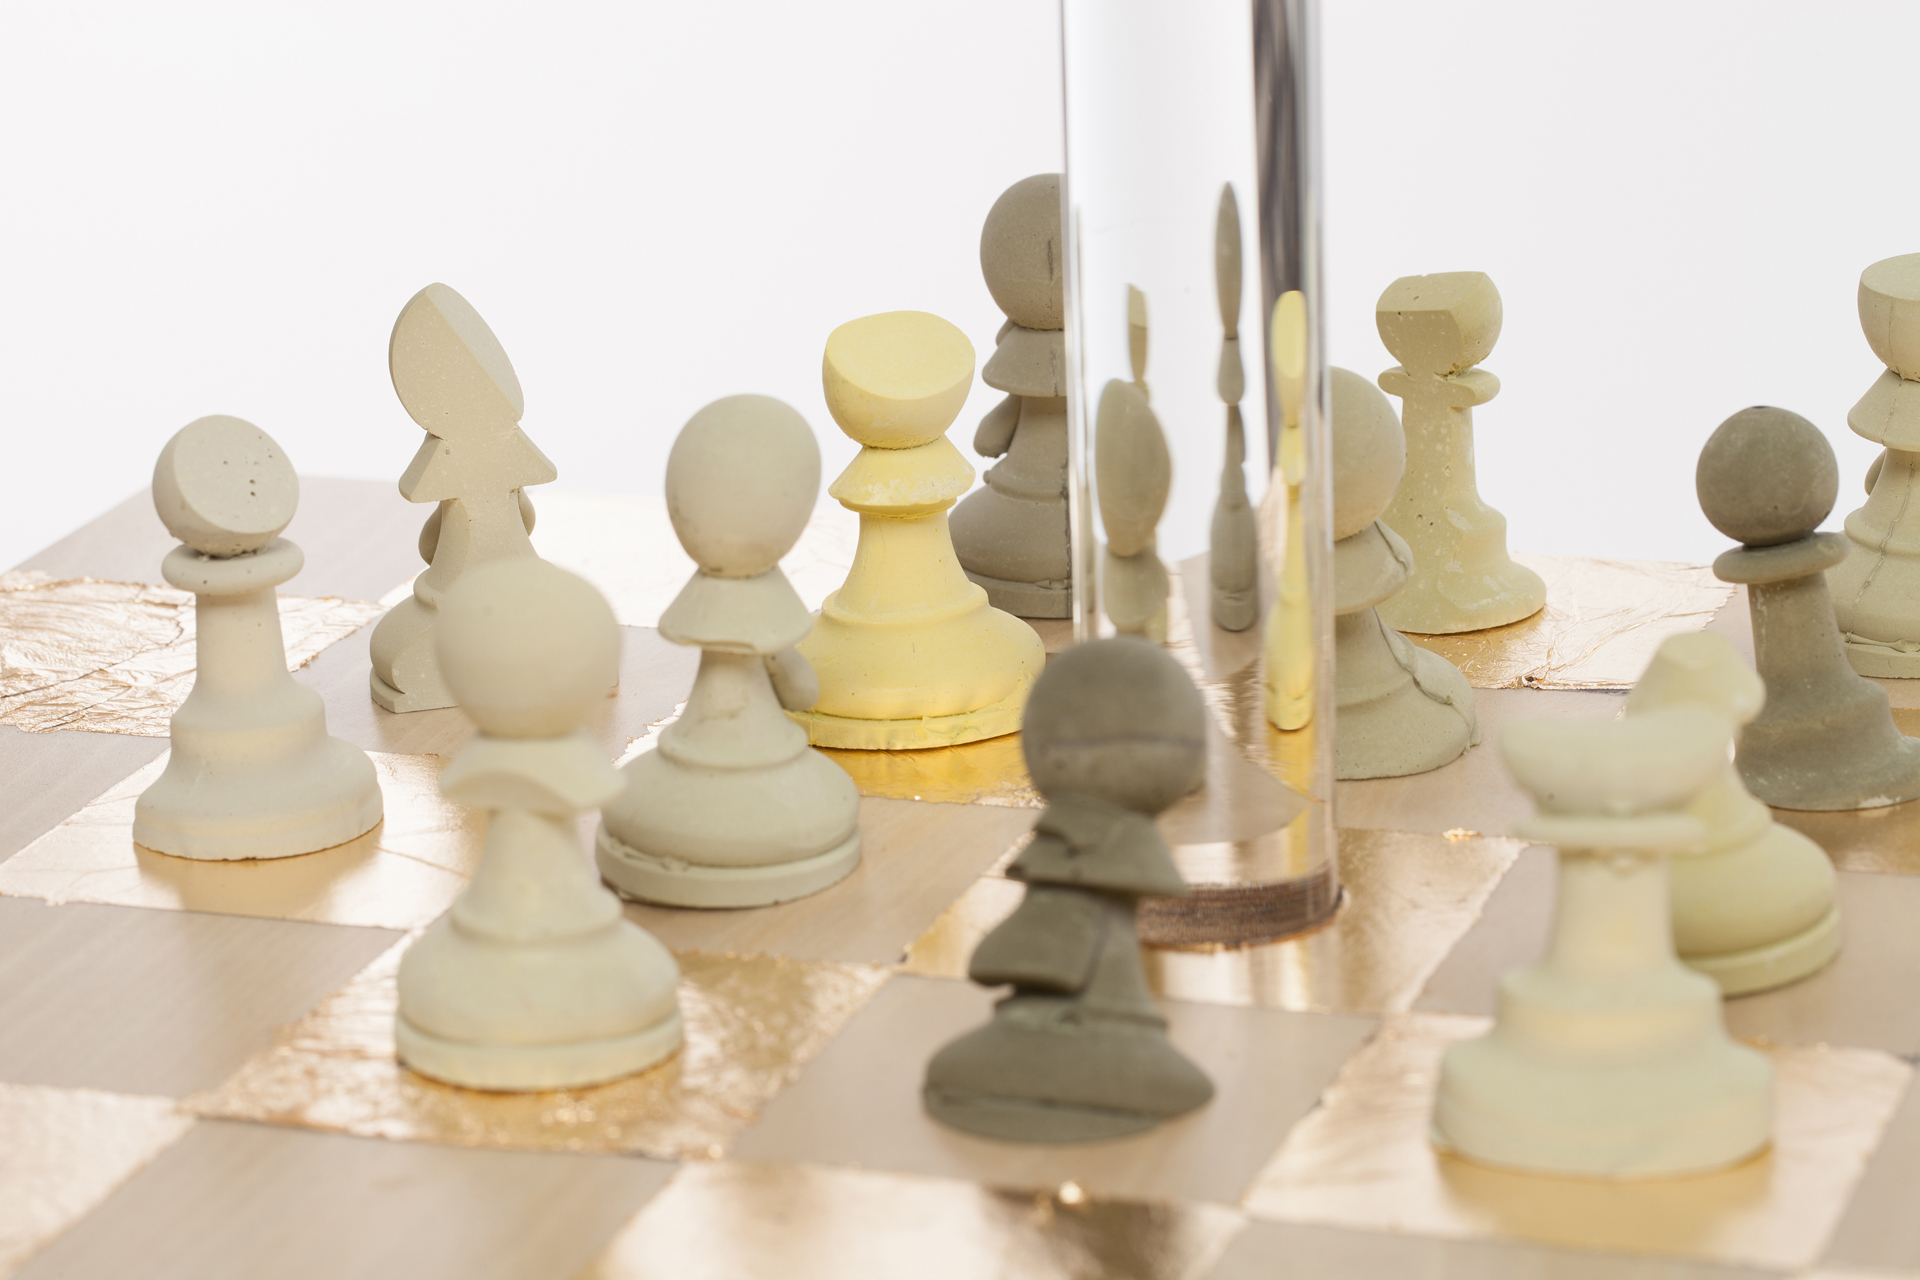 Inspired By The Diverse Artistic Approaches Used By Participants In The  Original The Imagery Of Chess Exhibition, Brandon Anschultz Abandoned The  Concept Of ...